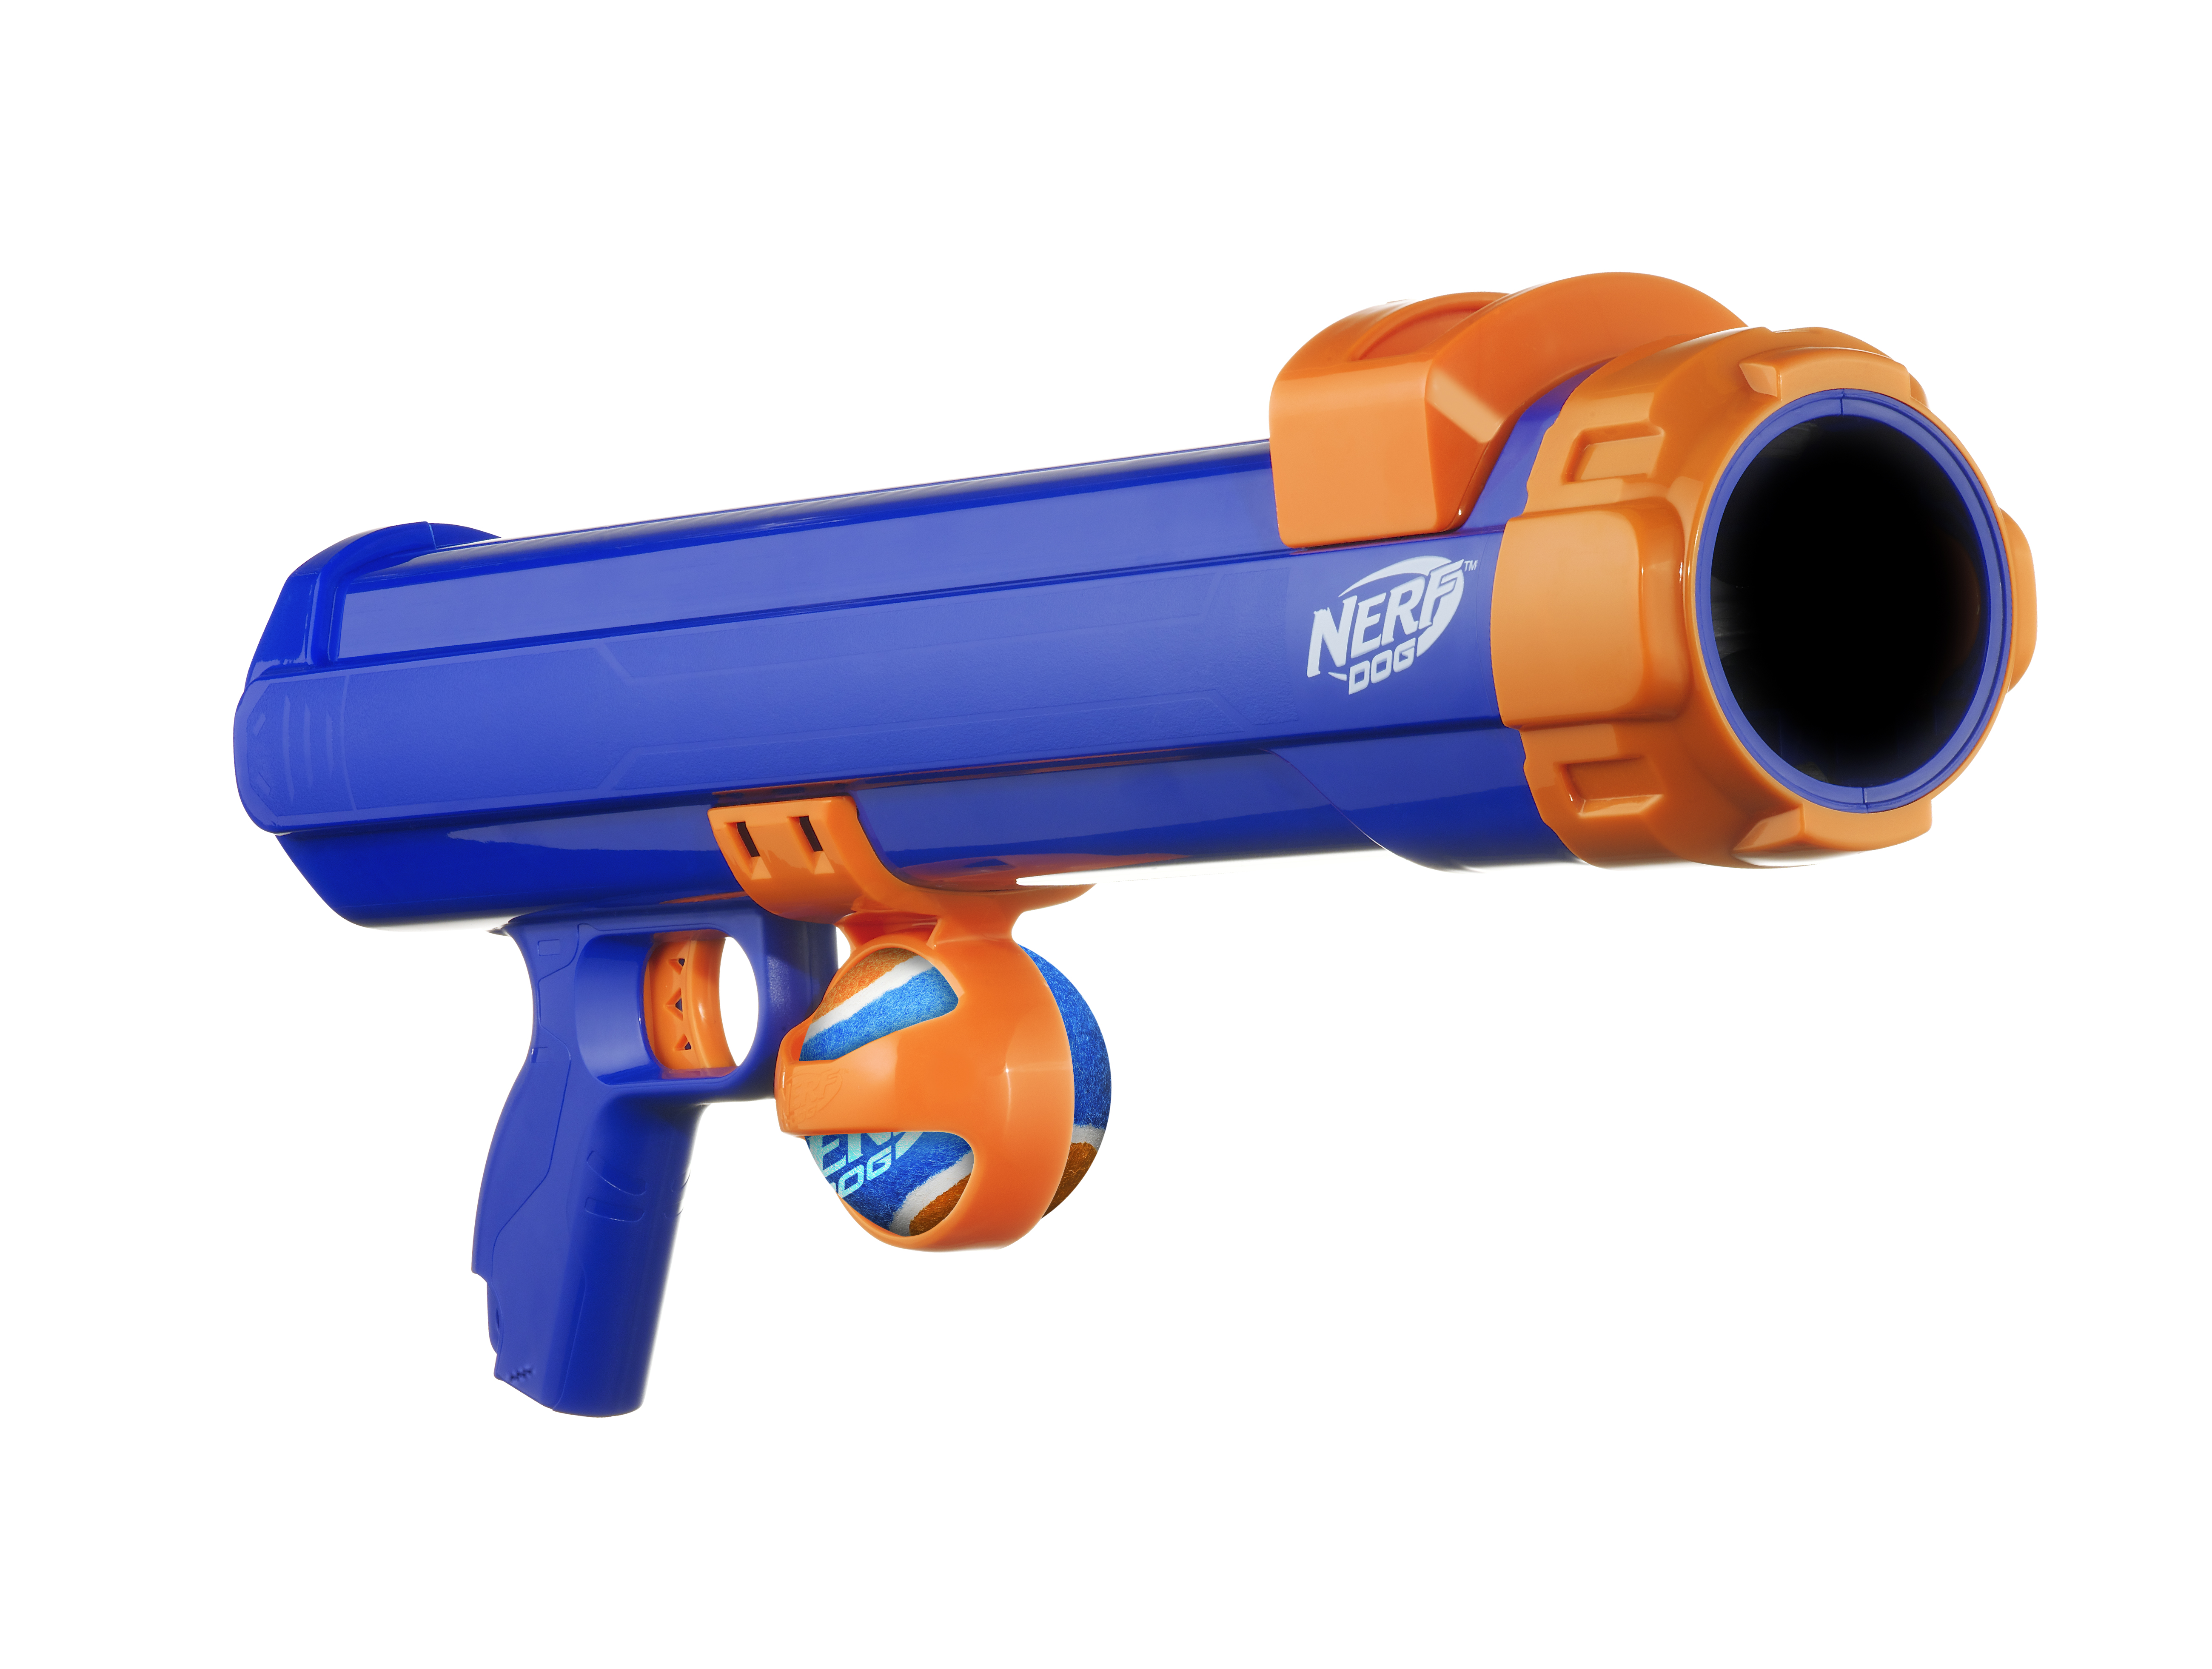 fucked with a nerf ball